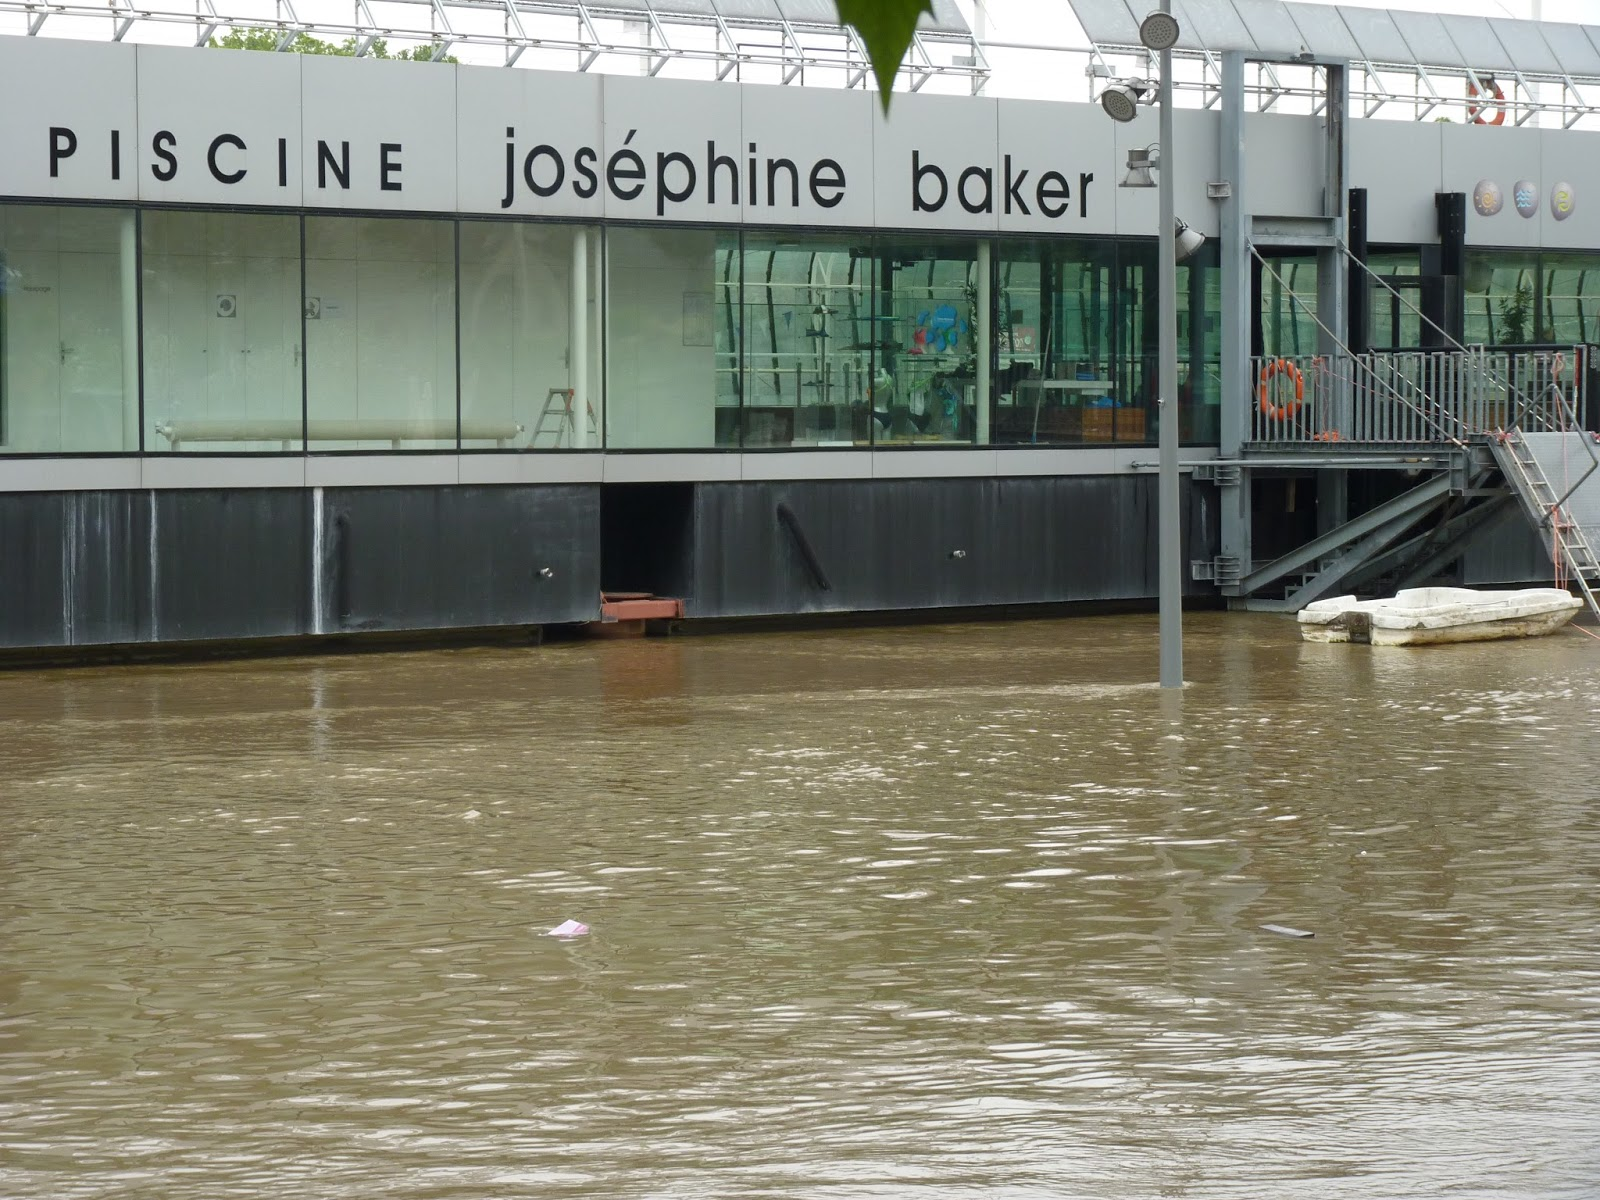 La bobine rouge for Piscine josephine baker